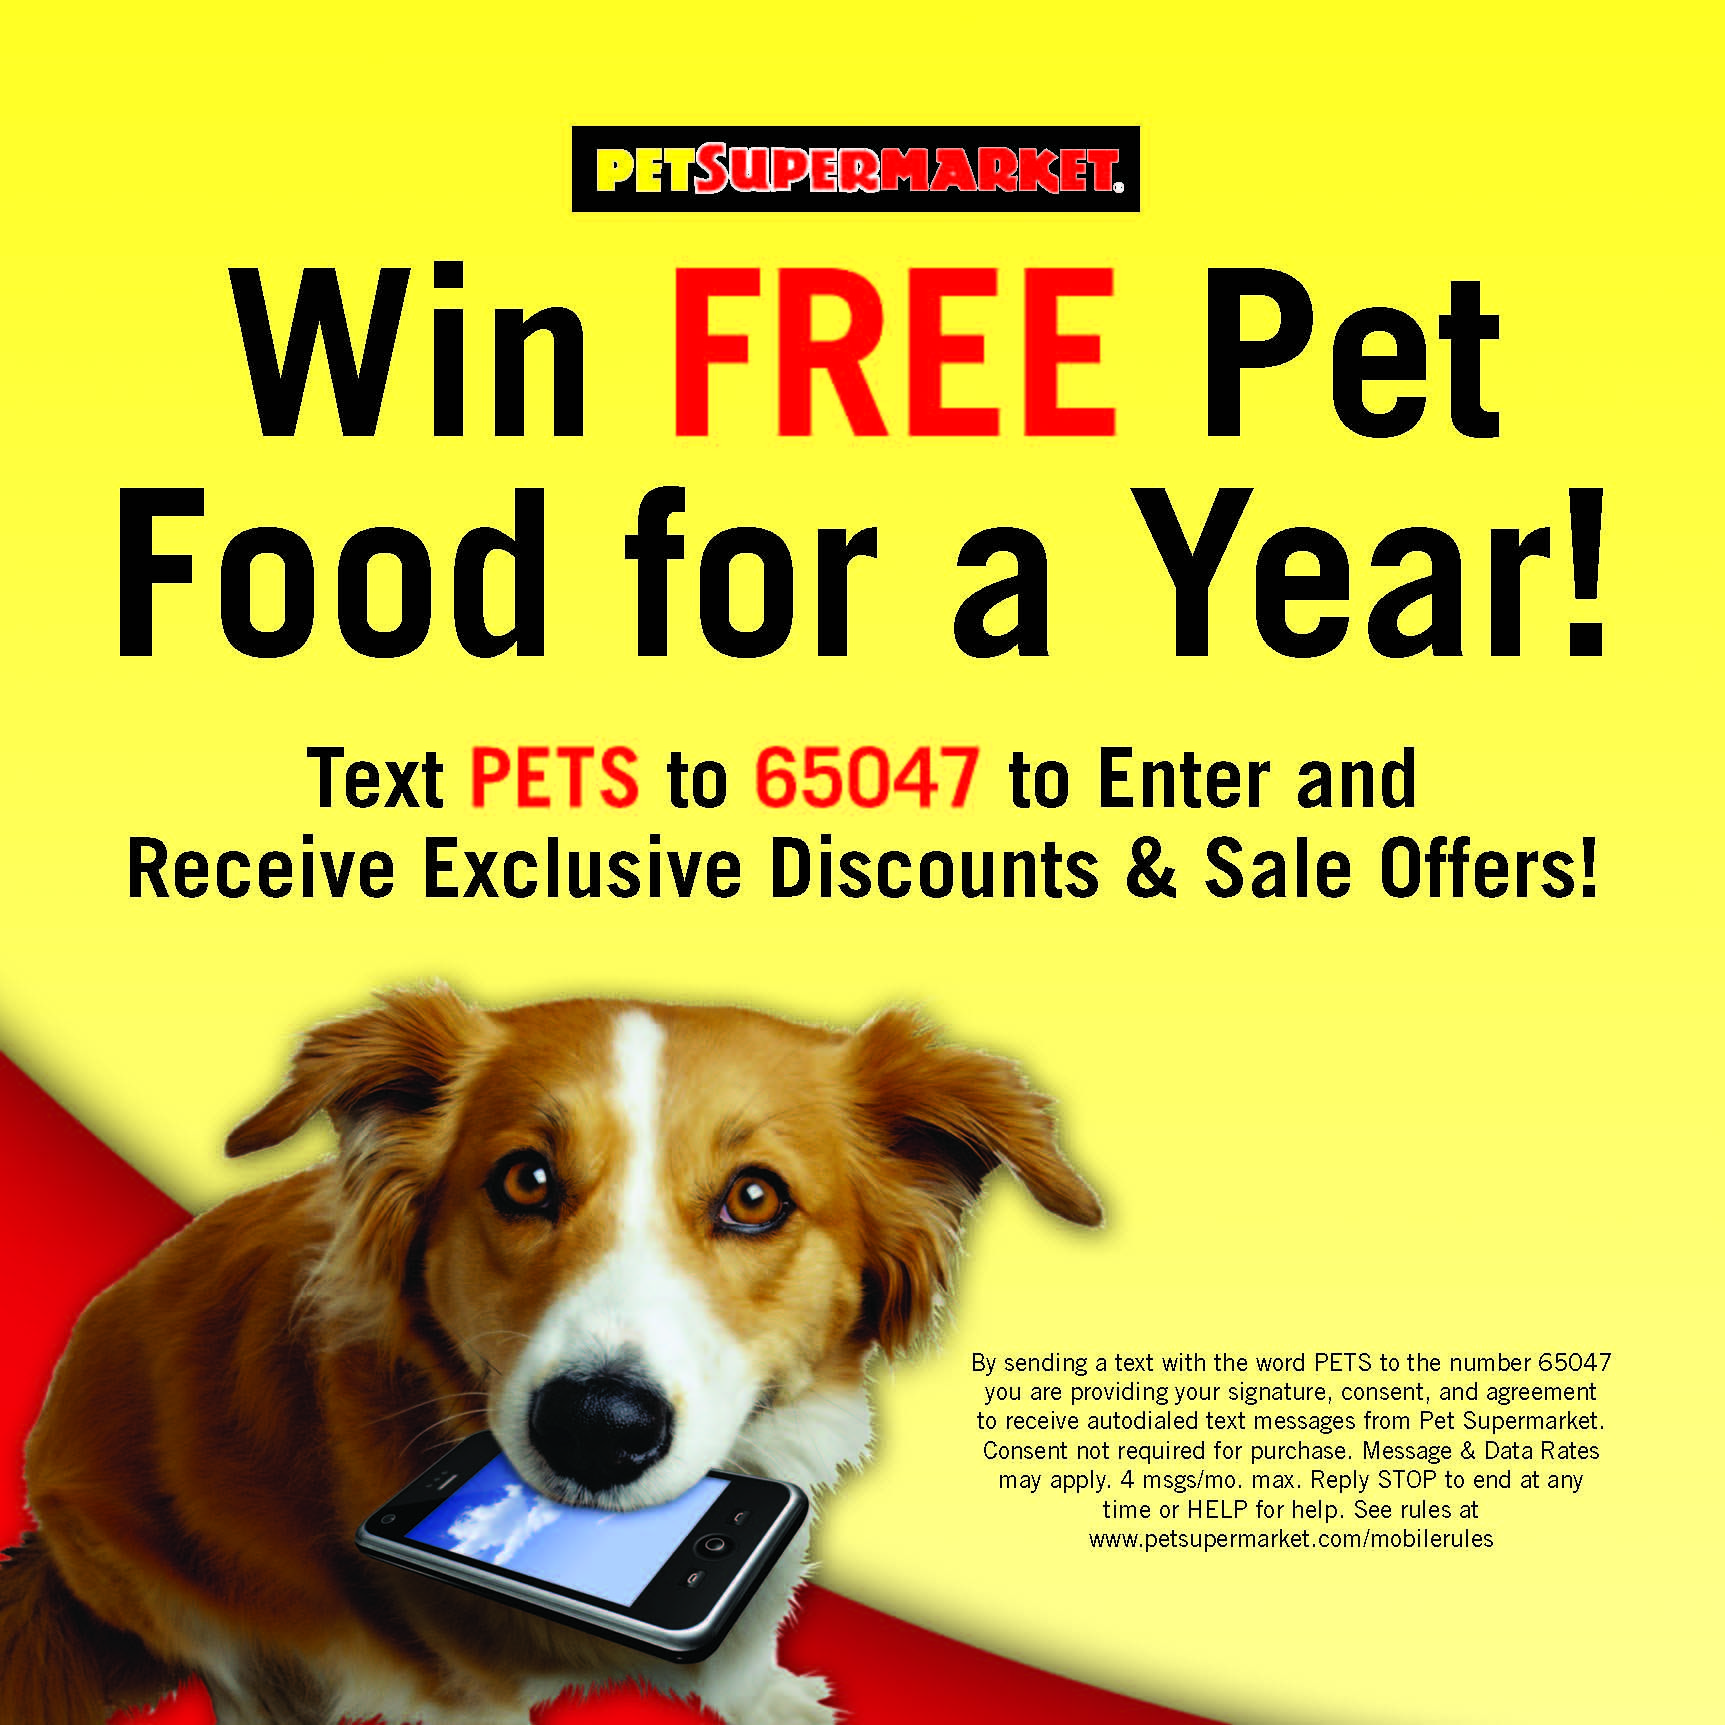 Have you joined our mobile VIP list yet? Just text PETS to